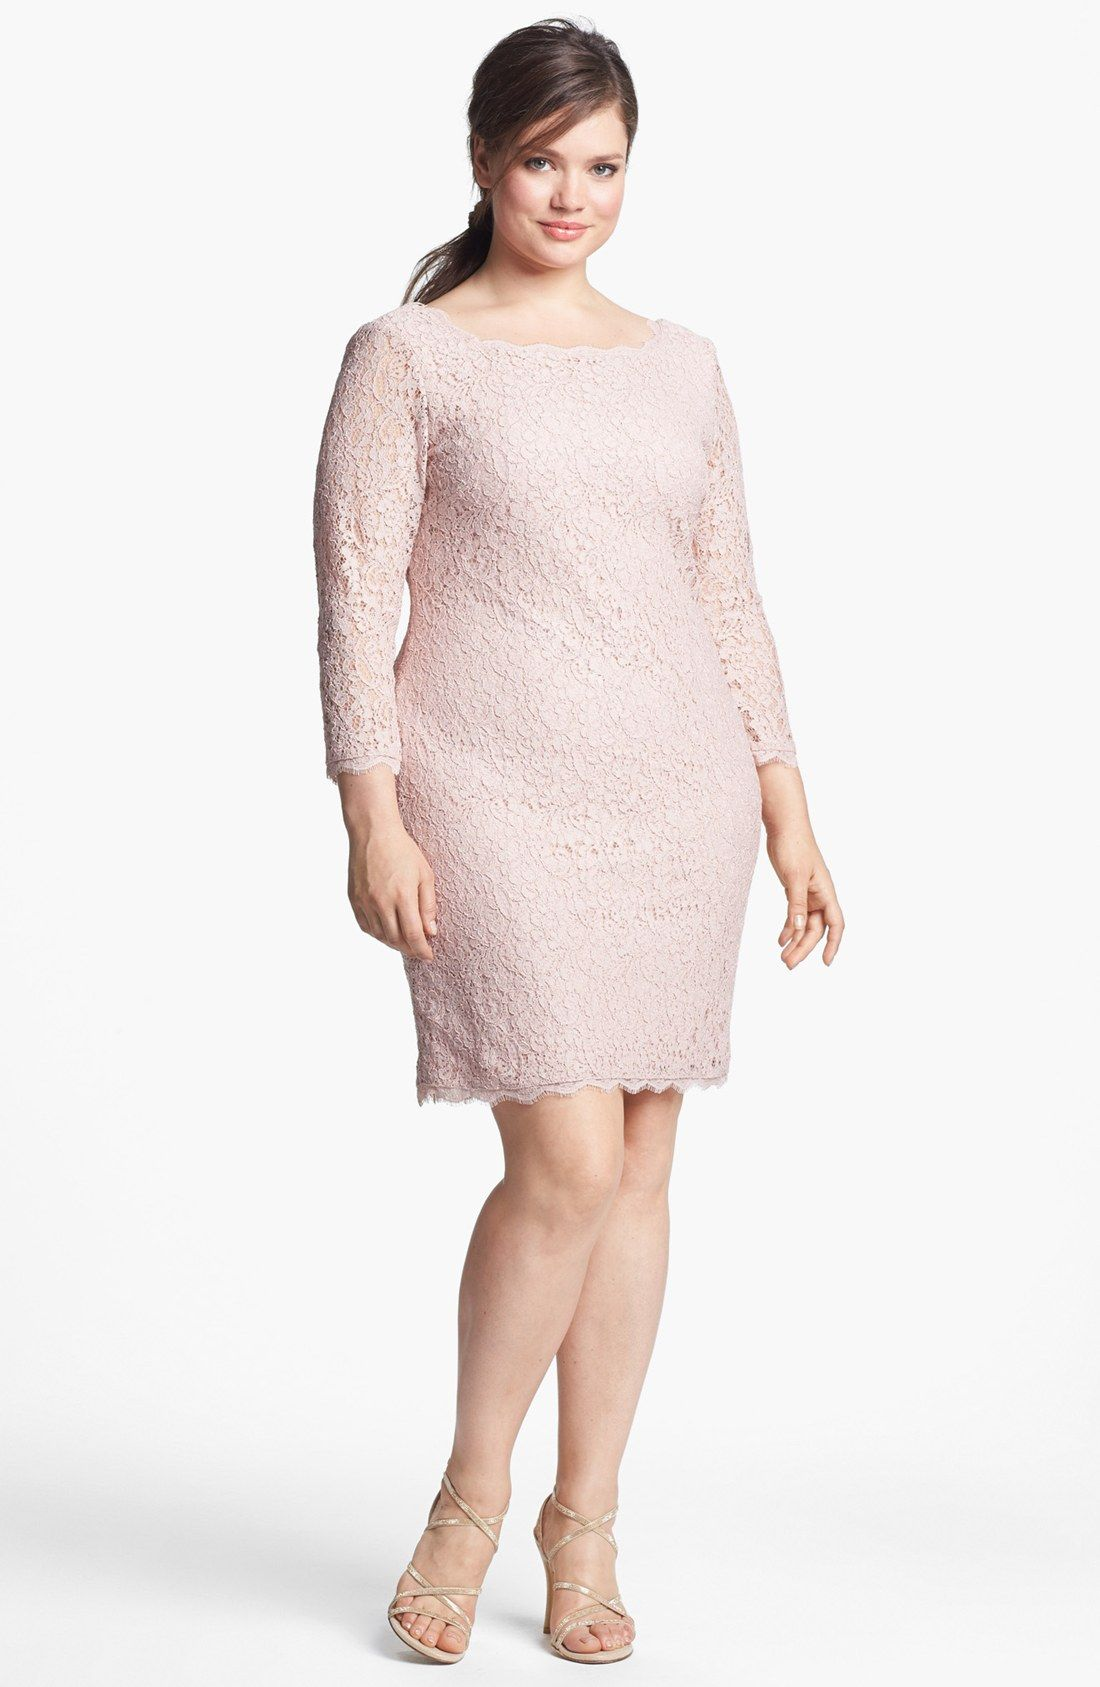 Adrianna Papell Plus Size Lace Dresses